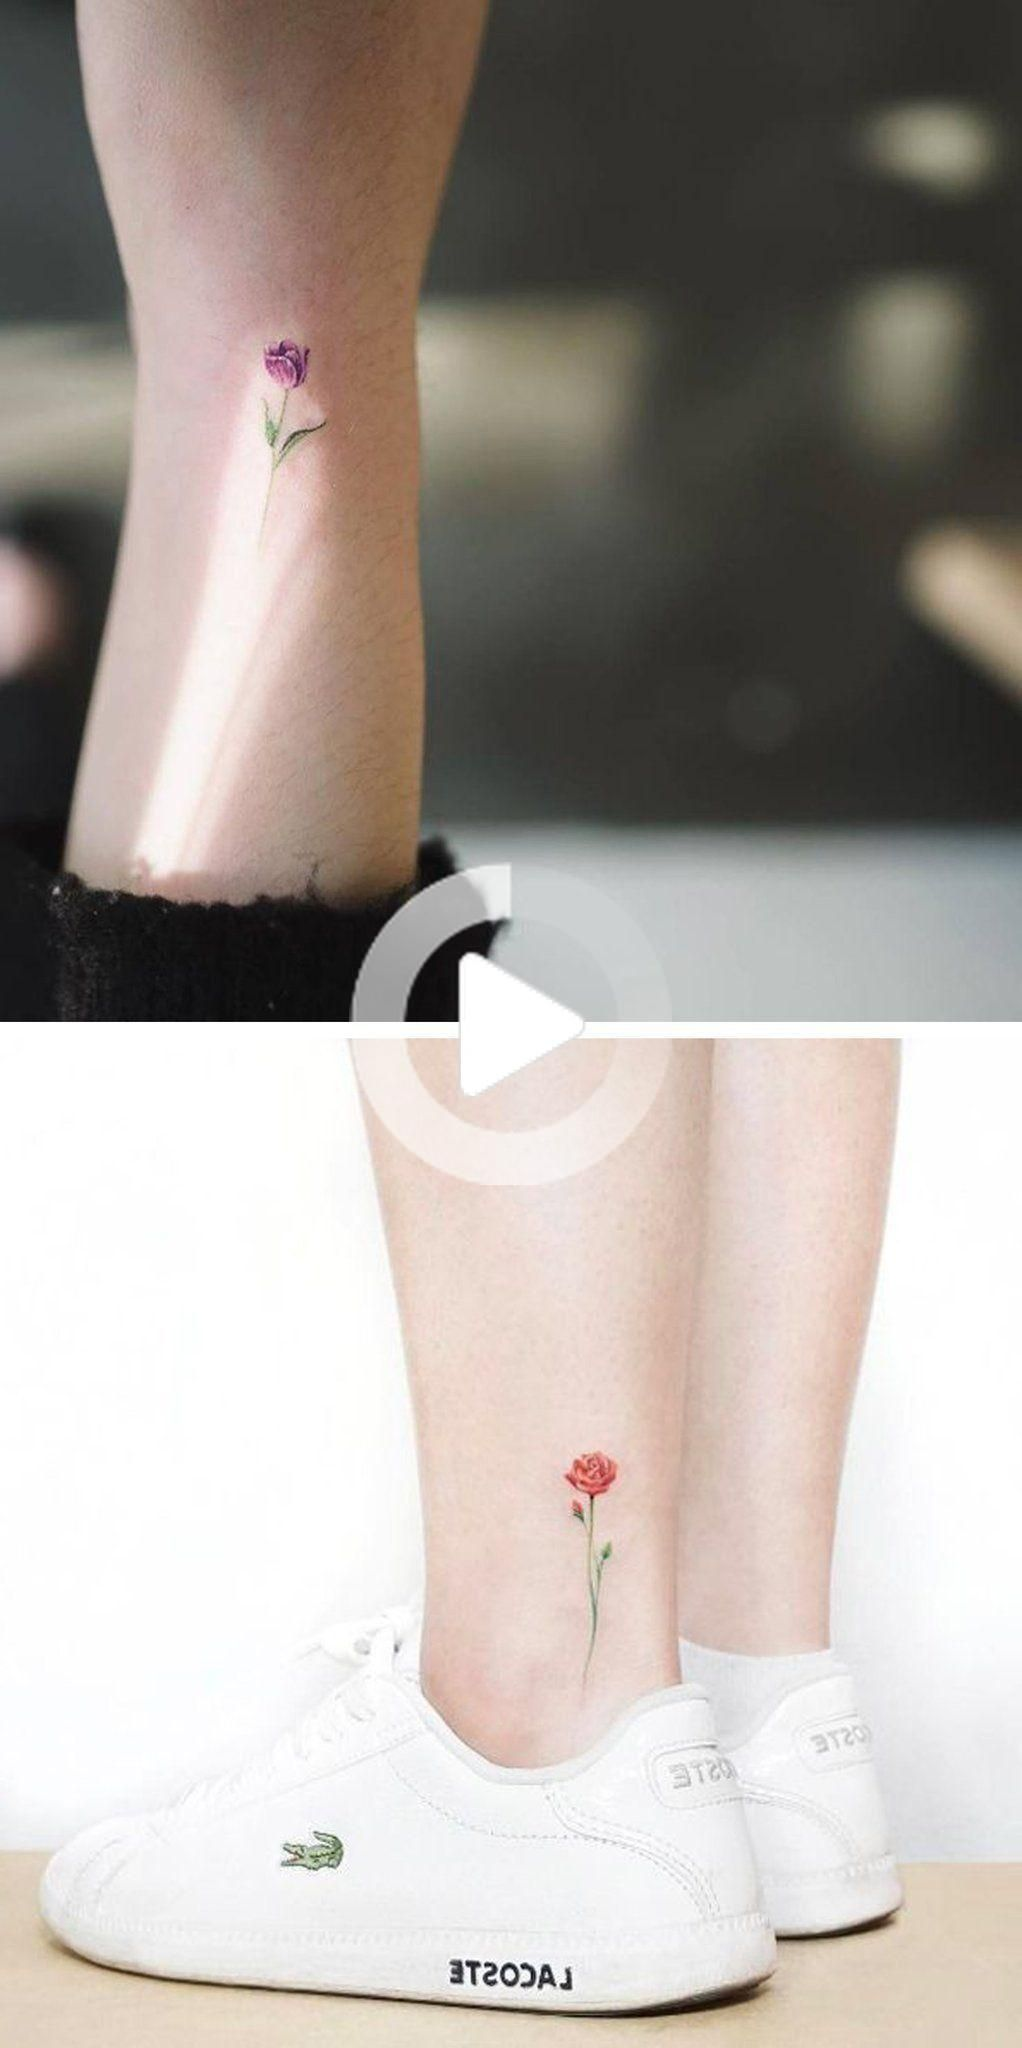 Tiny Watercolor Flower Ankle Tattoo Ideas Colorful Rose Wrist Tatt Mybodiart Com In 2020 Ankle Tattoo Small Flower Tattoo On Ankle Rose Tattoo On Ankle